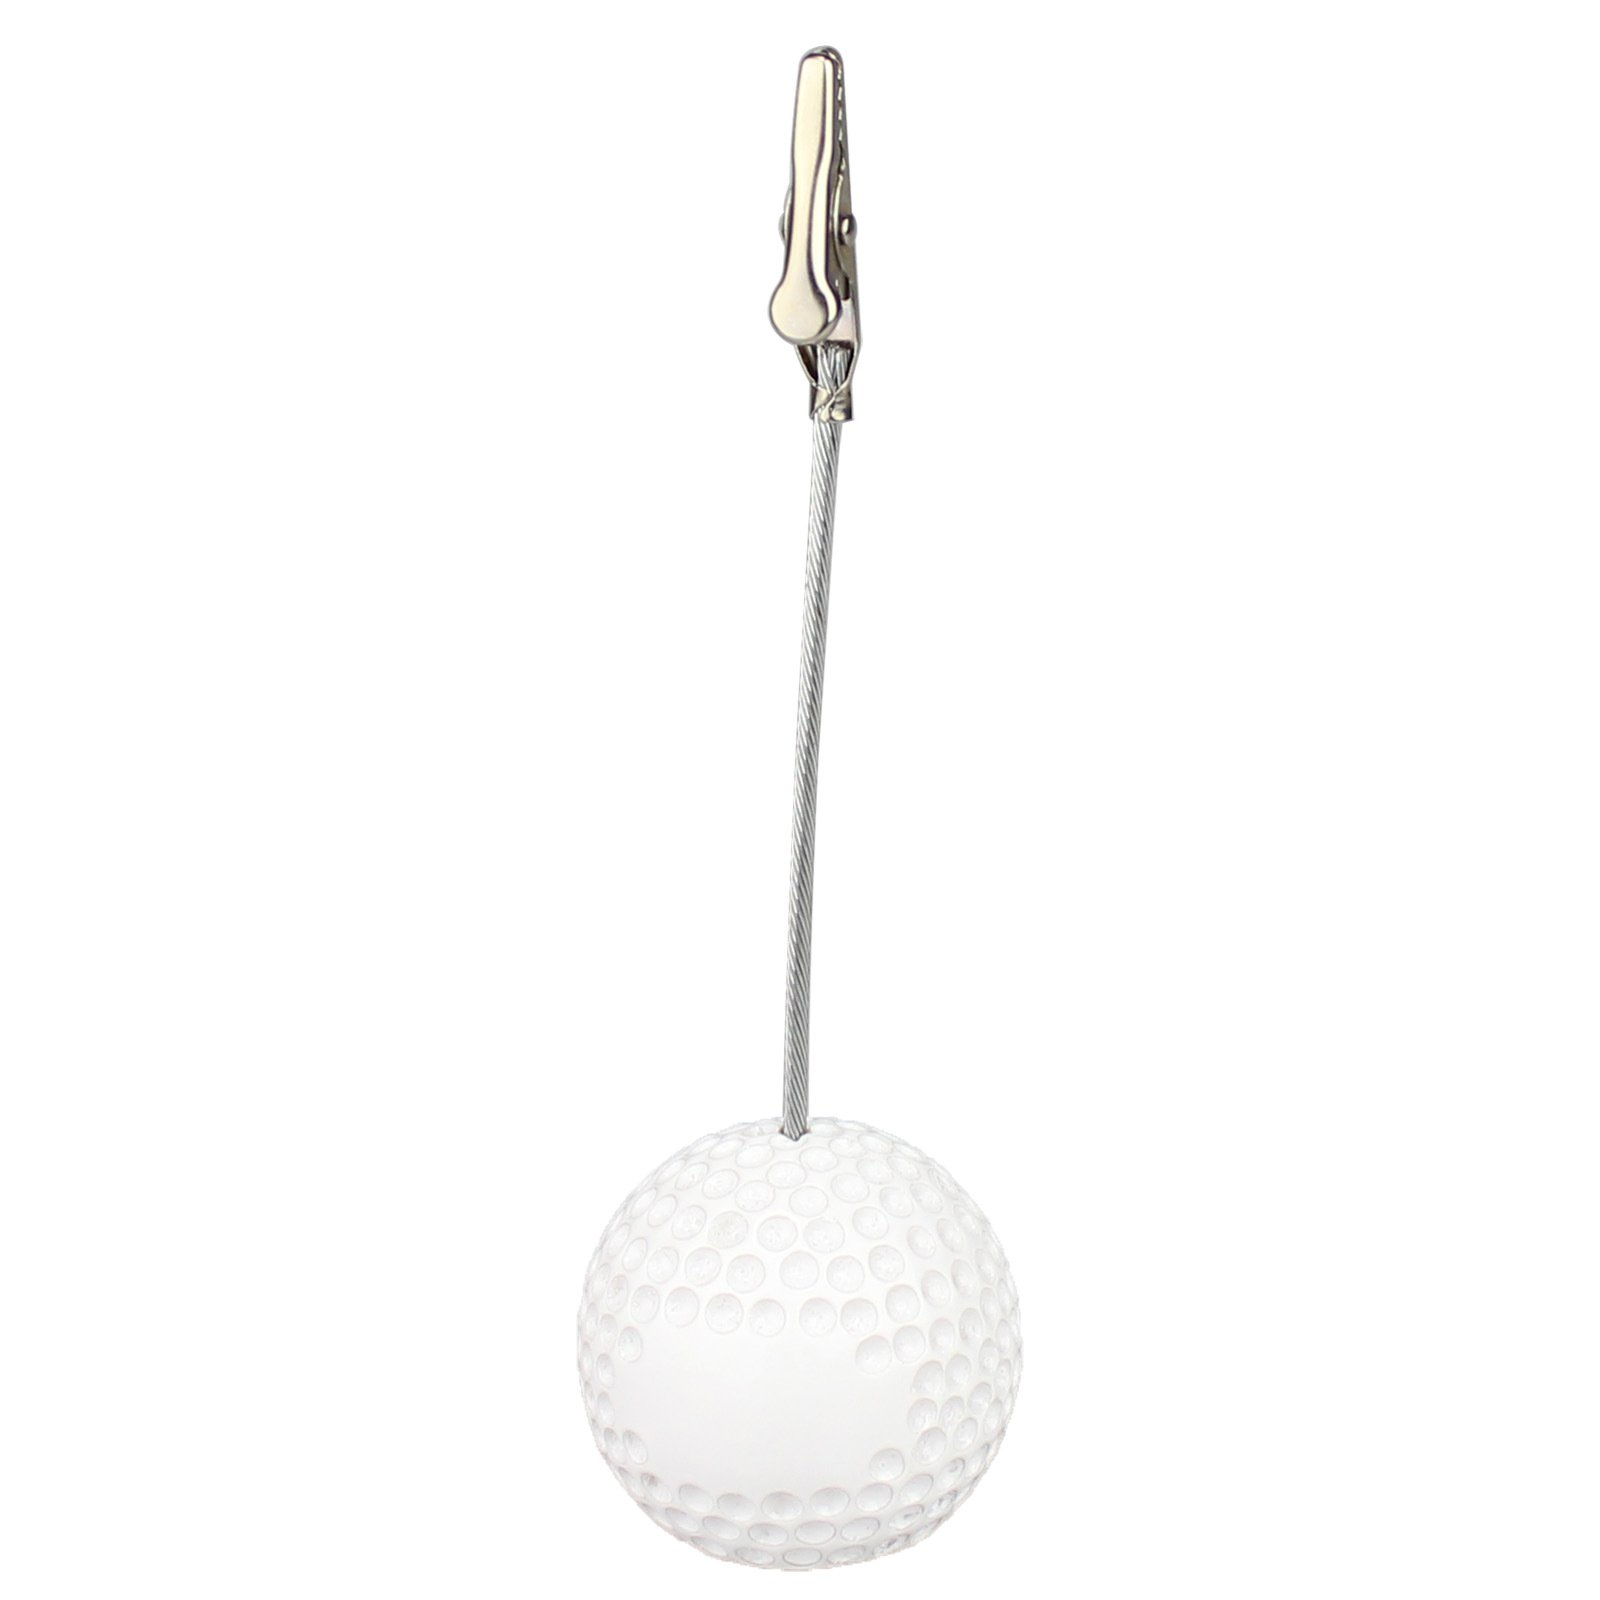 5Pcs Sport Game Ball Stand Alligator Wire Memo Photo Clip Holder,Table Place Card Holder,Sport Event Display,Wedding Party Favor Fusheng (Golf Ball Shape) by Fusheng